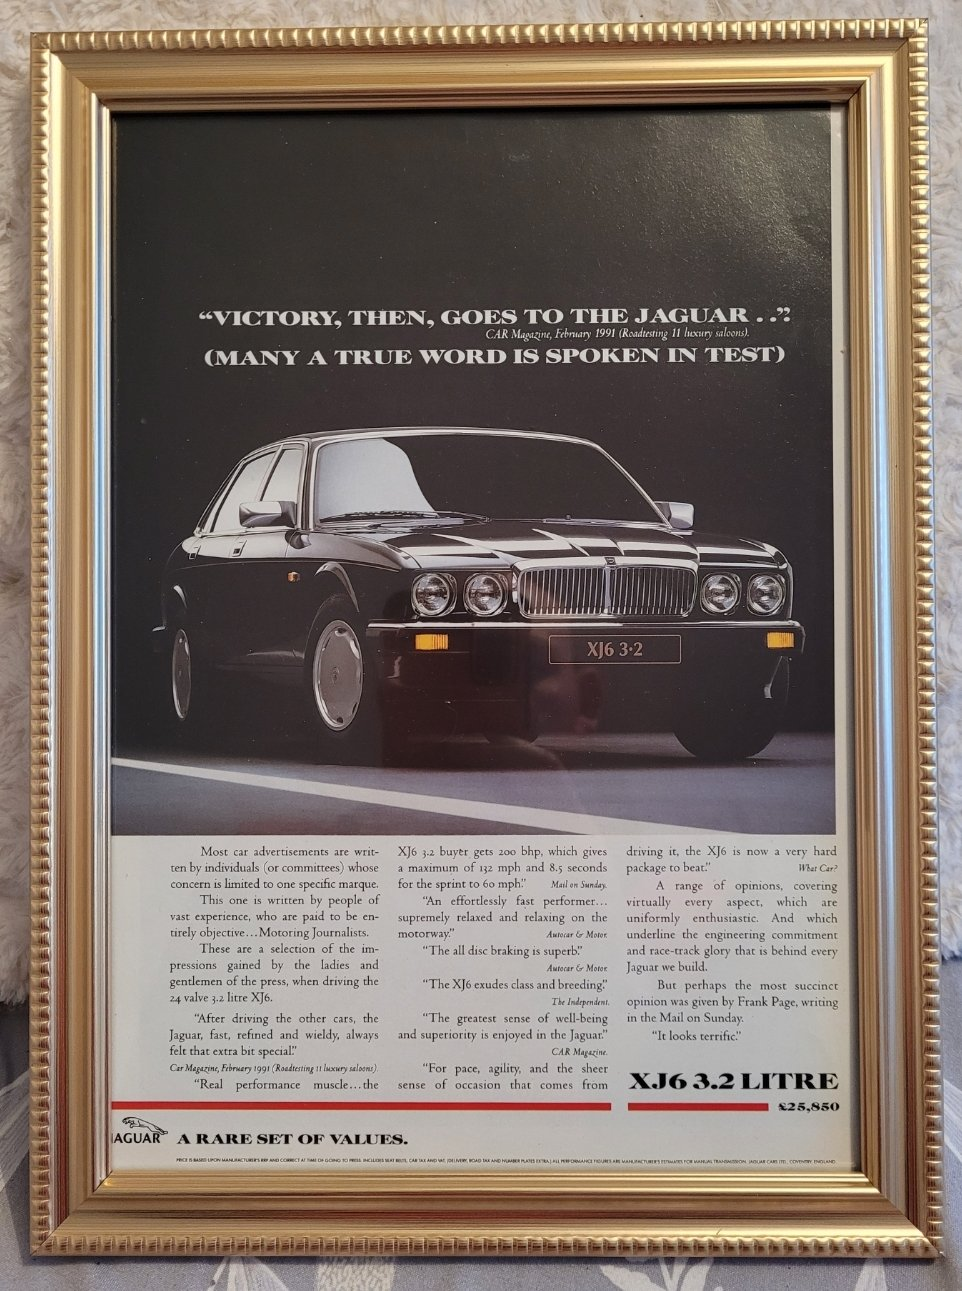 Original 1991 Jaguar XJ6 Framed Advert